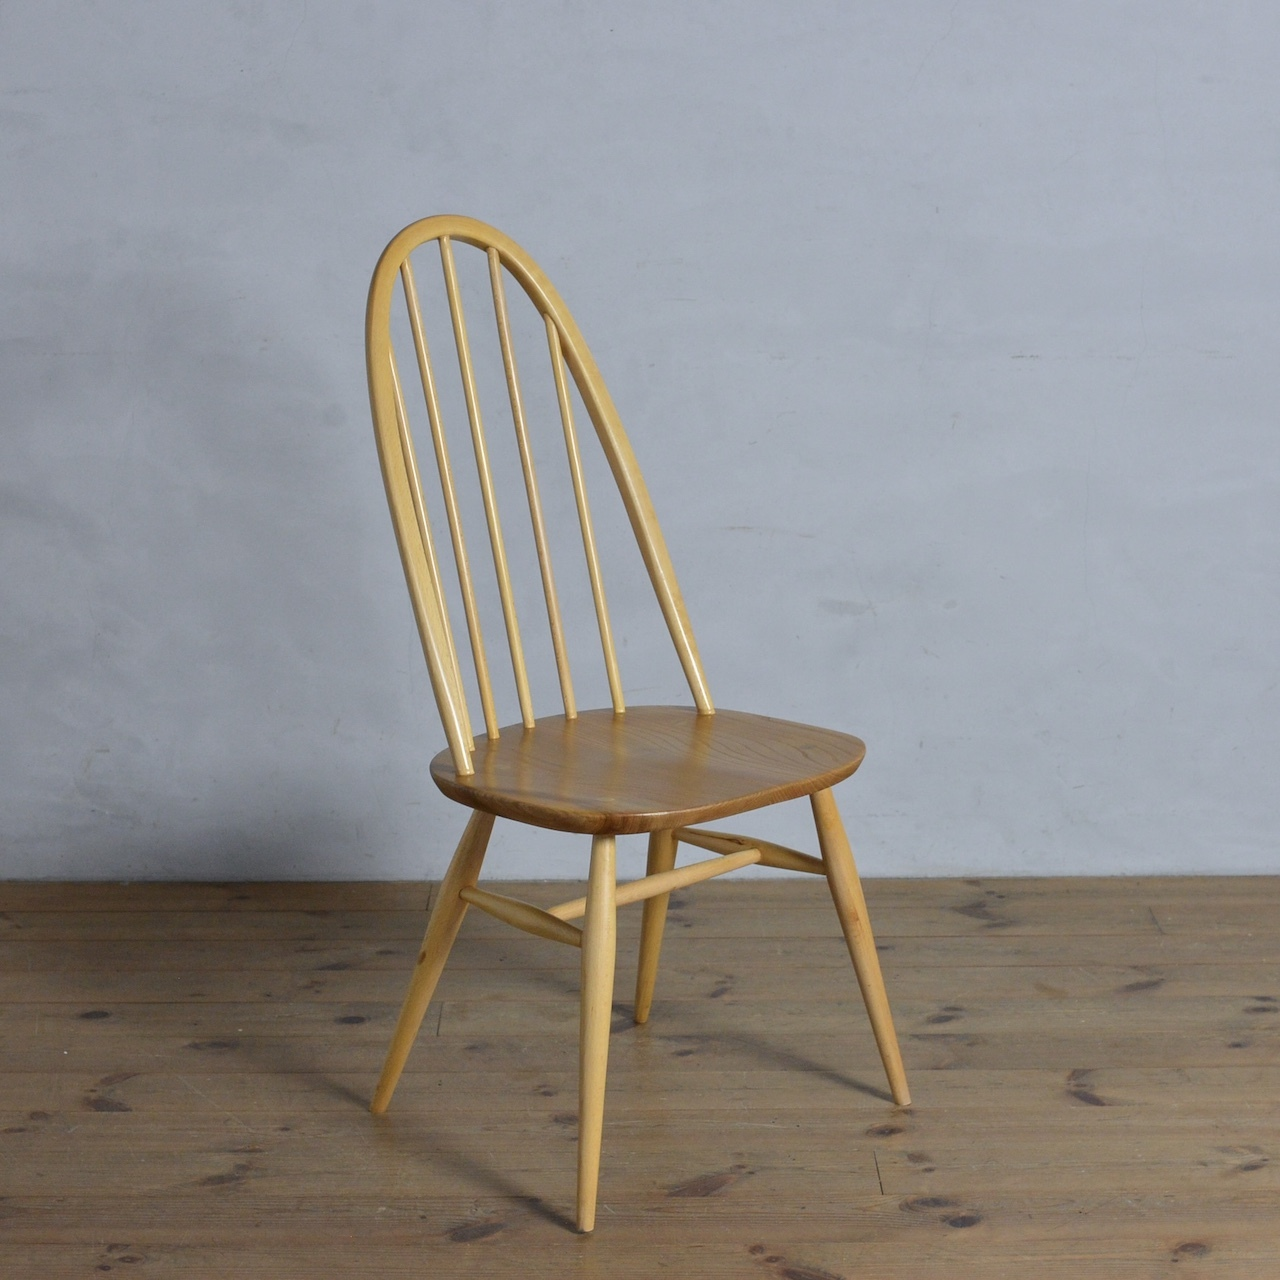 Ercol Quaker Chair / アーコール クエーカー チェア〈ダイニングチェア・ミッドセンチュリー・北欧〉112171